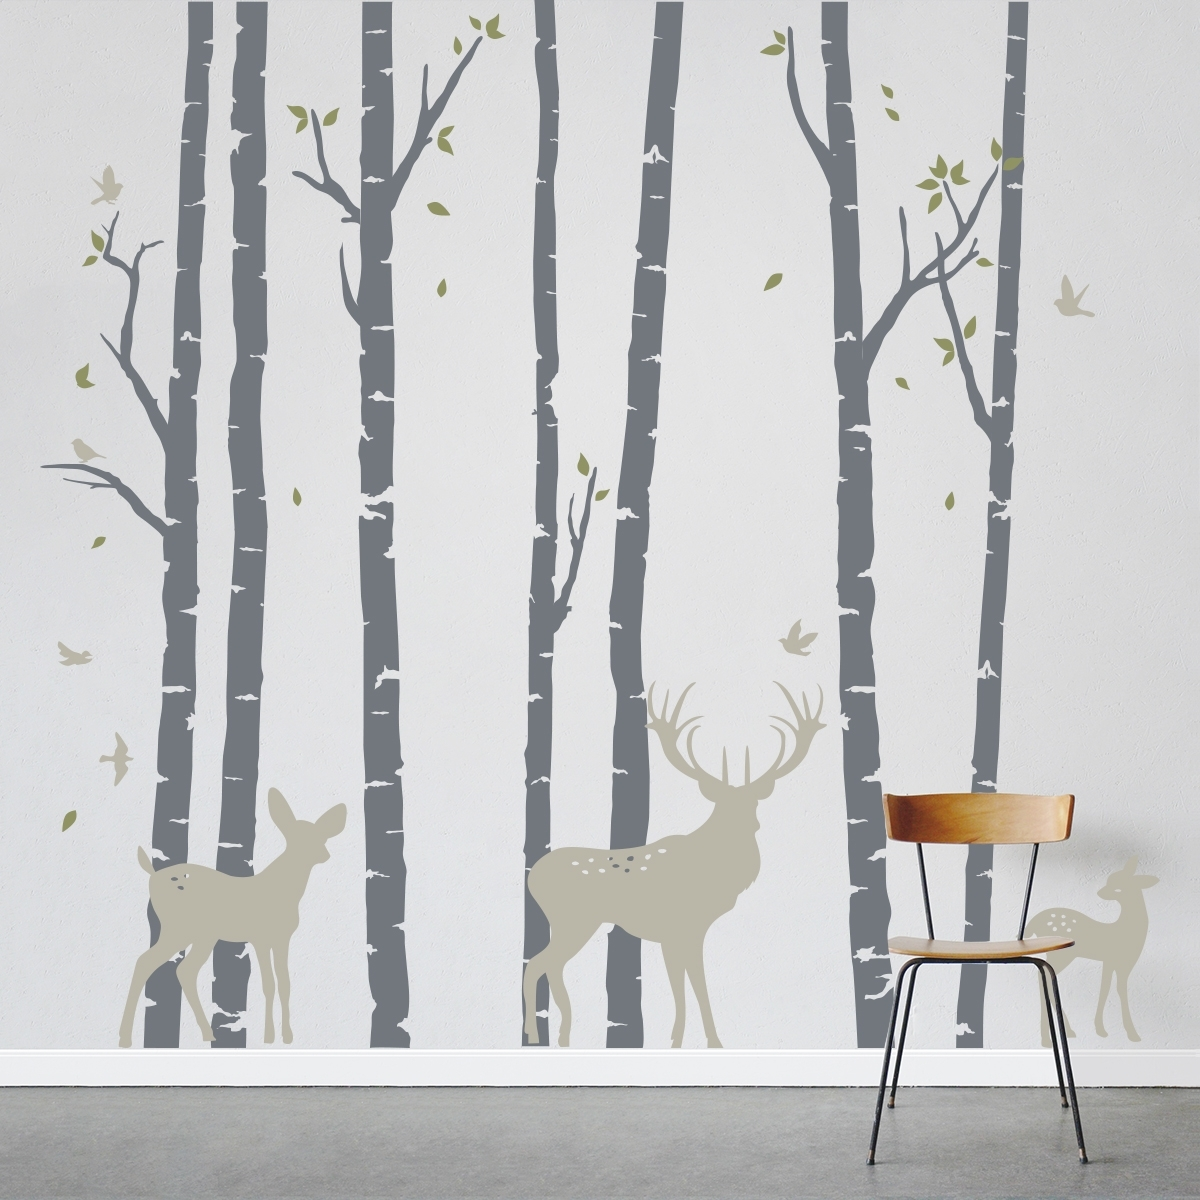 Most Current Birch Tree Wall Art For Birch Trees Forest With Fresh Birch Tree Wall Decal – Wall (View 8 of 20)